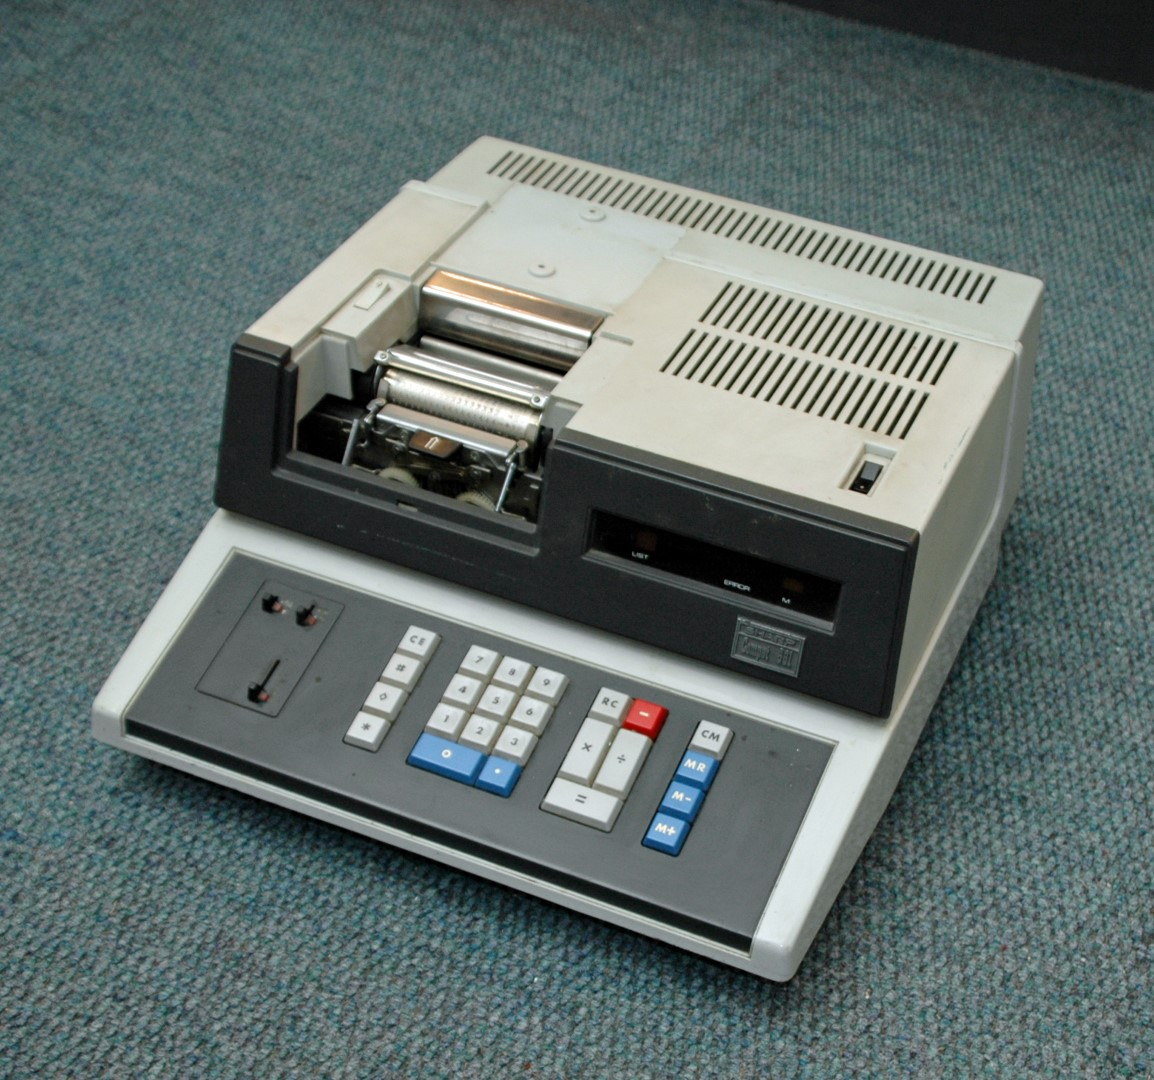 Sharp Compet 661 printing calculator